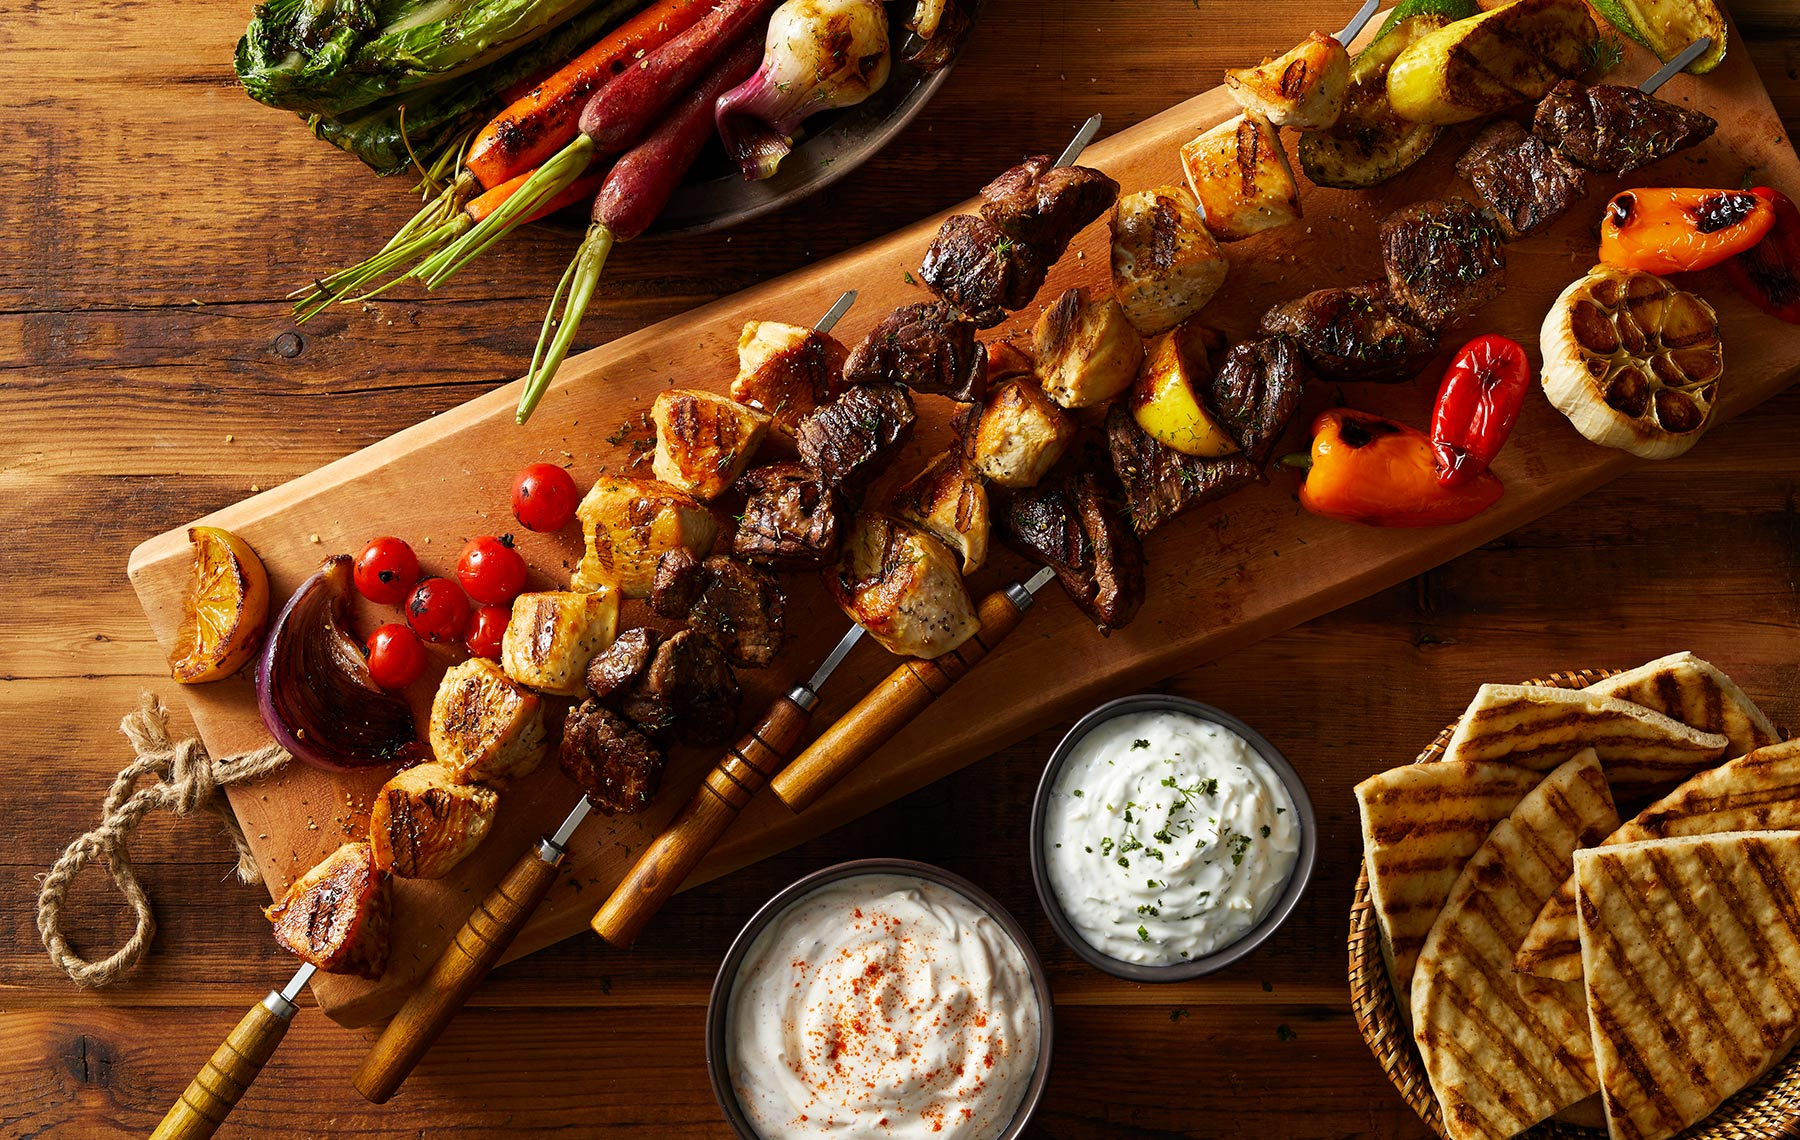 Fage_Apr18_Plain_Kebabs_Hero_0295_RT